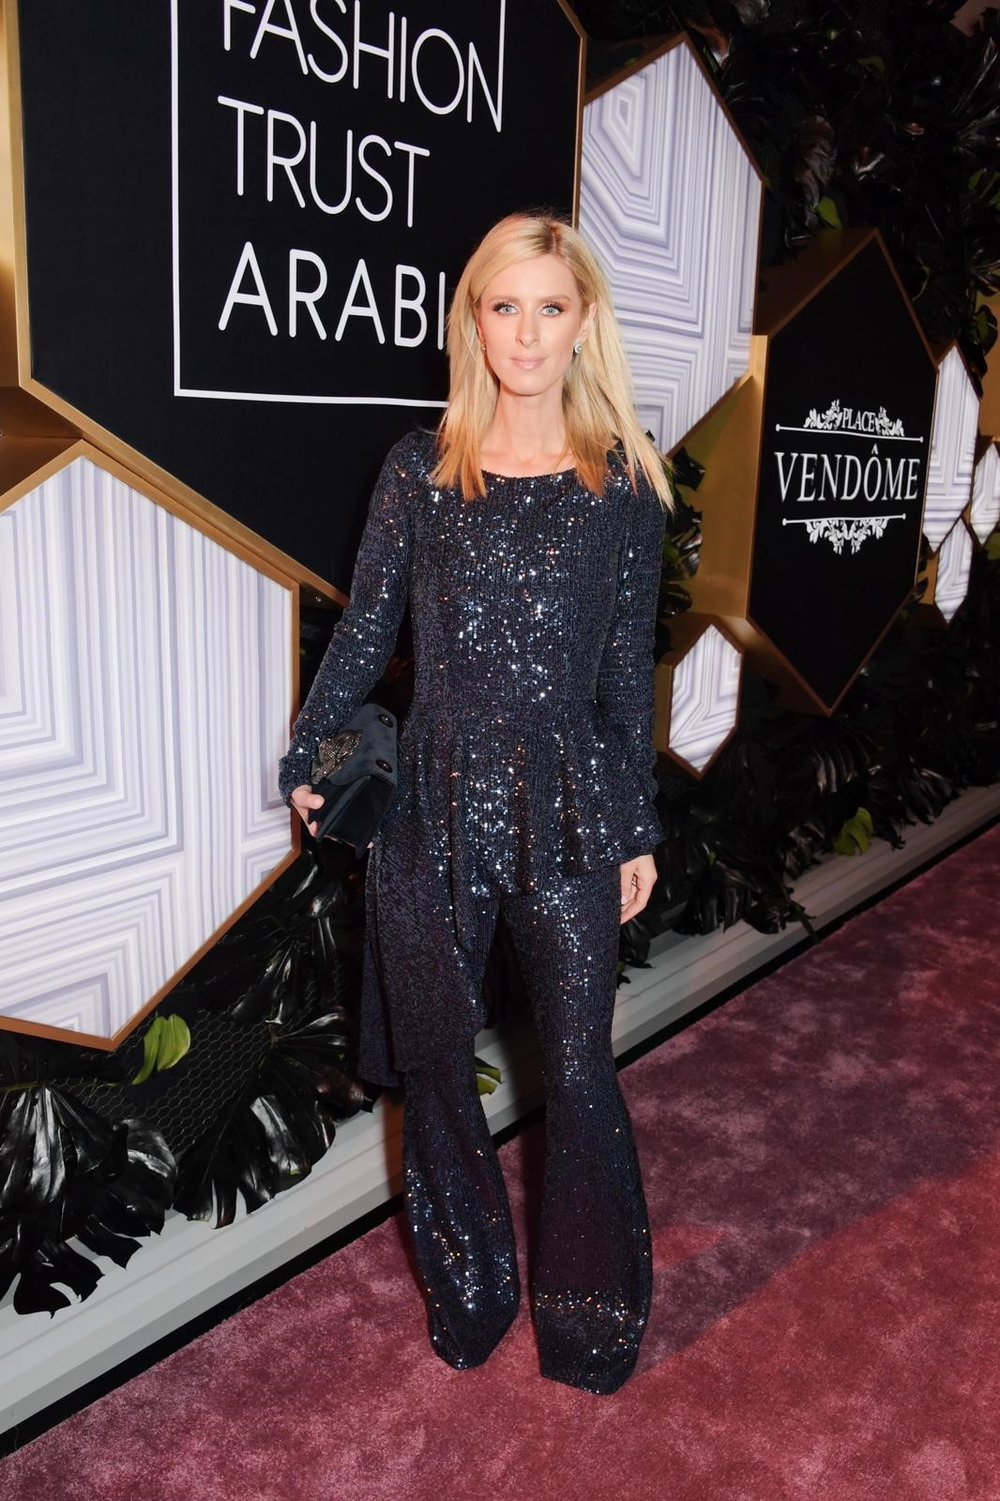 Nicky Hilton attends the Fashion Trust Arabia Prize Awards in Doha, Qatar